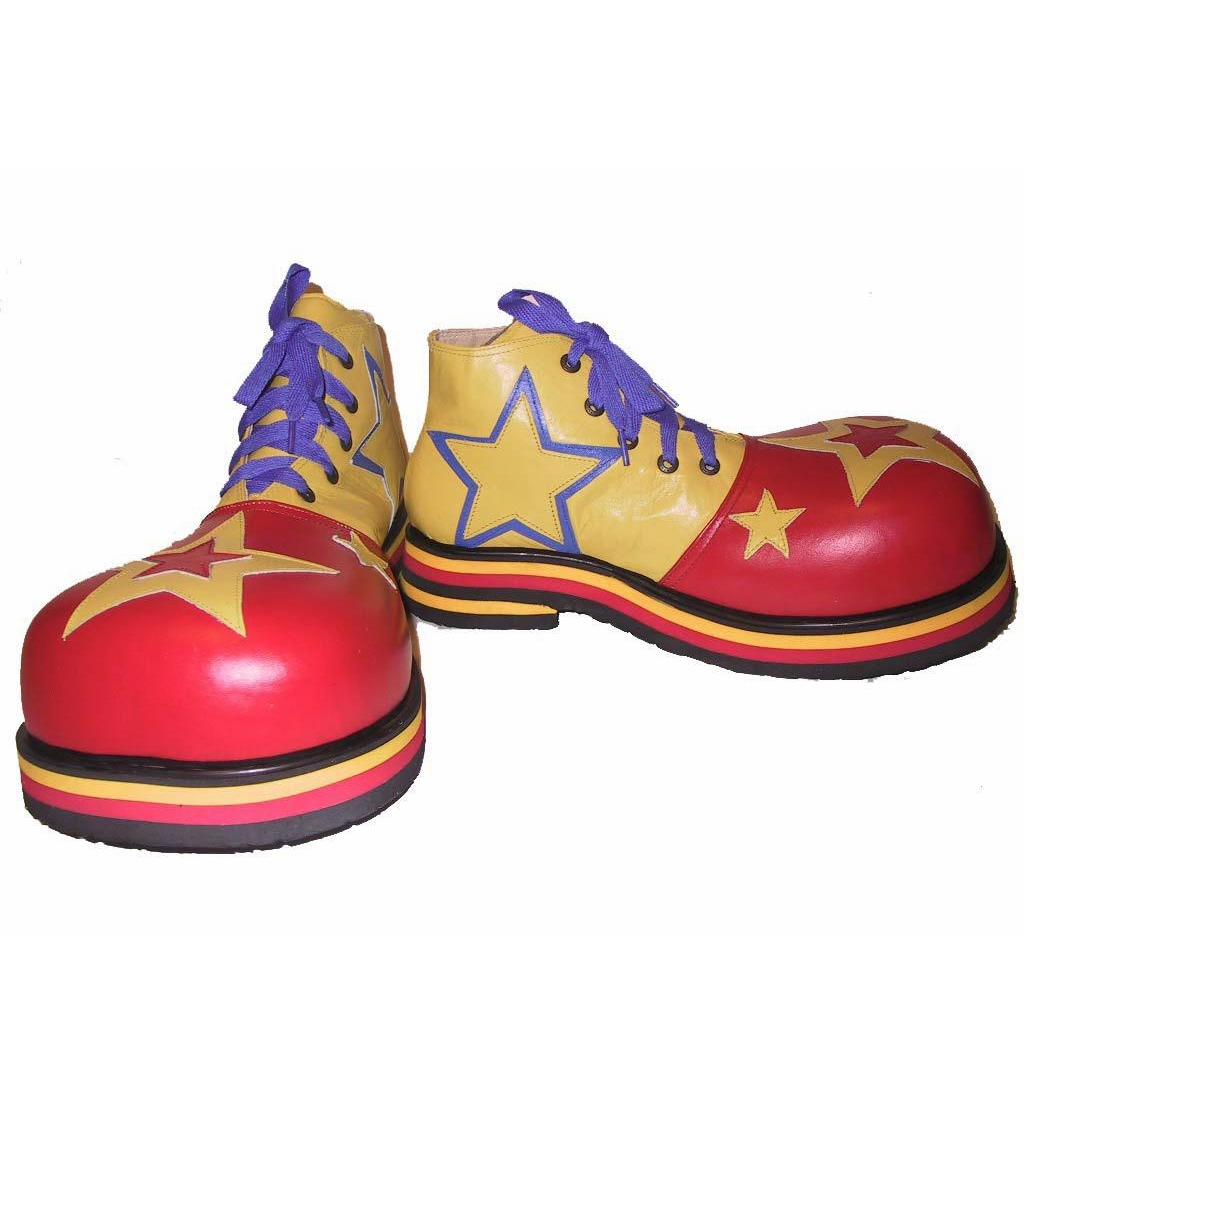 Clown Shoes Professional (Model 1)